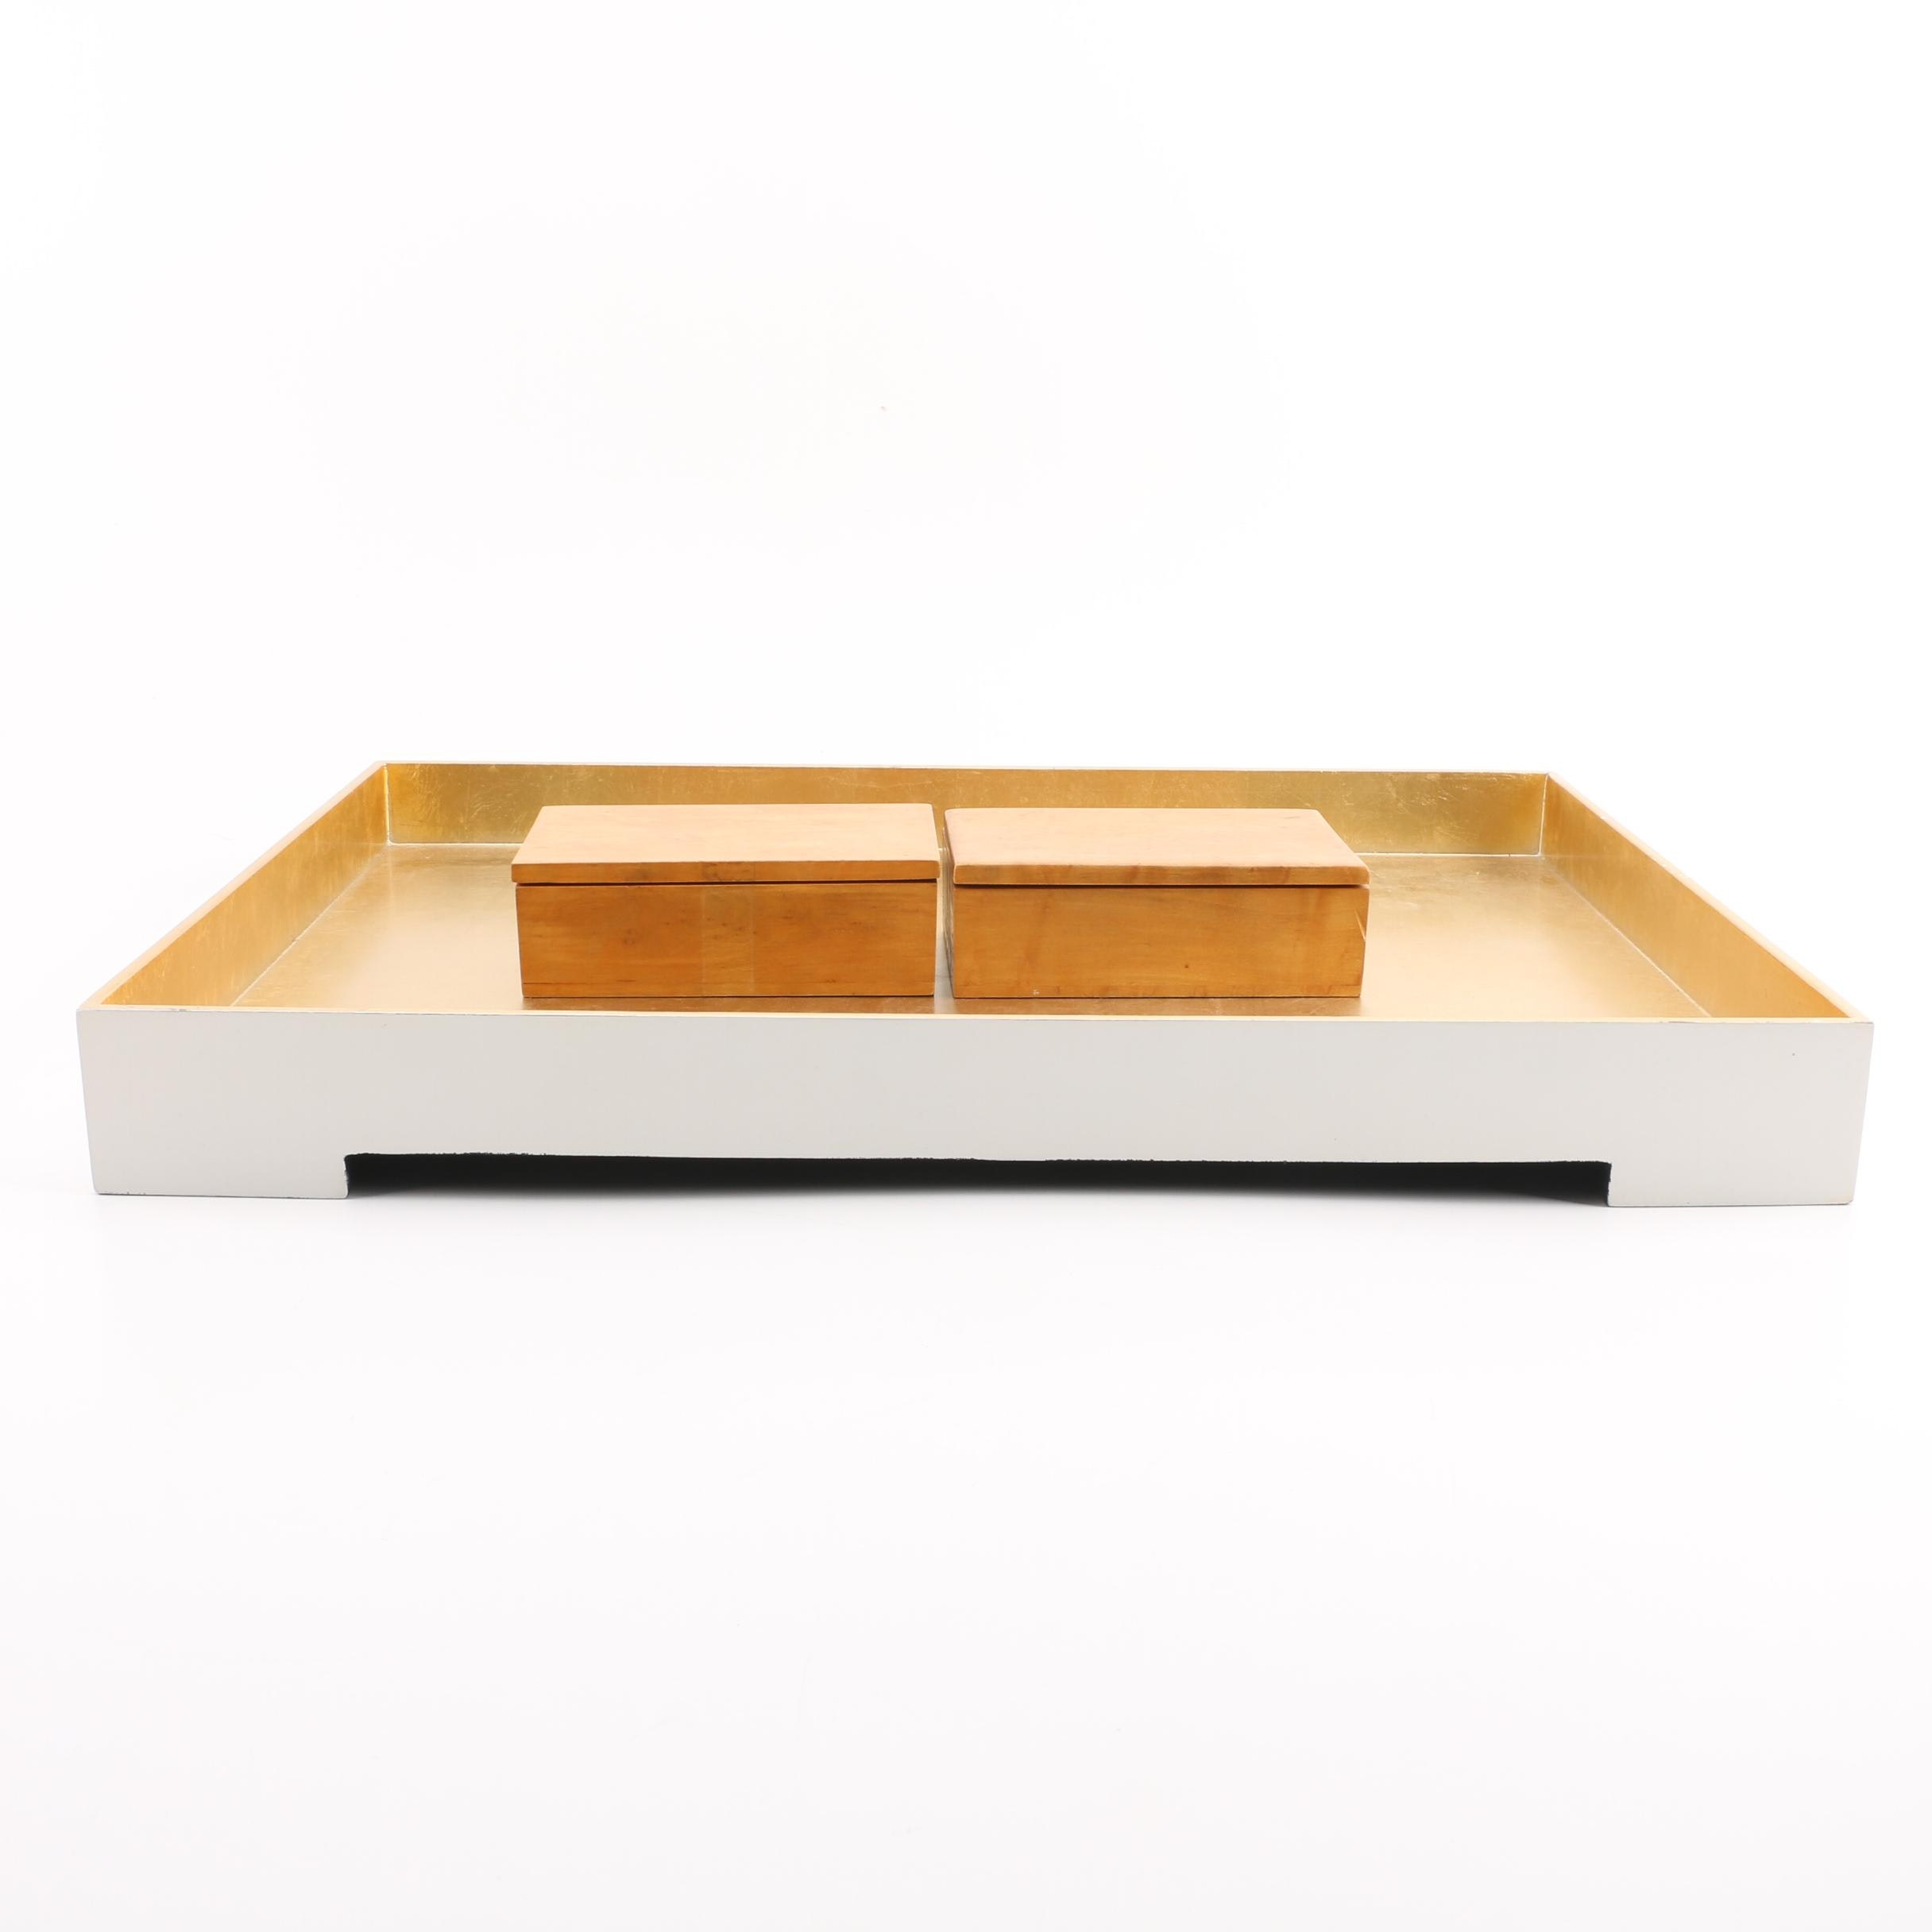 "Surya ""Kalista"" Desk Tray and Wood Lidded Boxes"